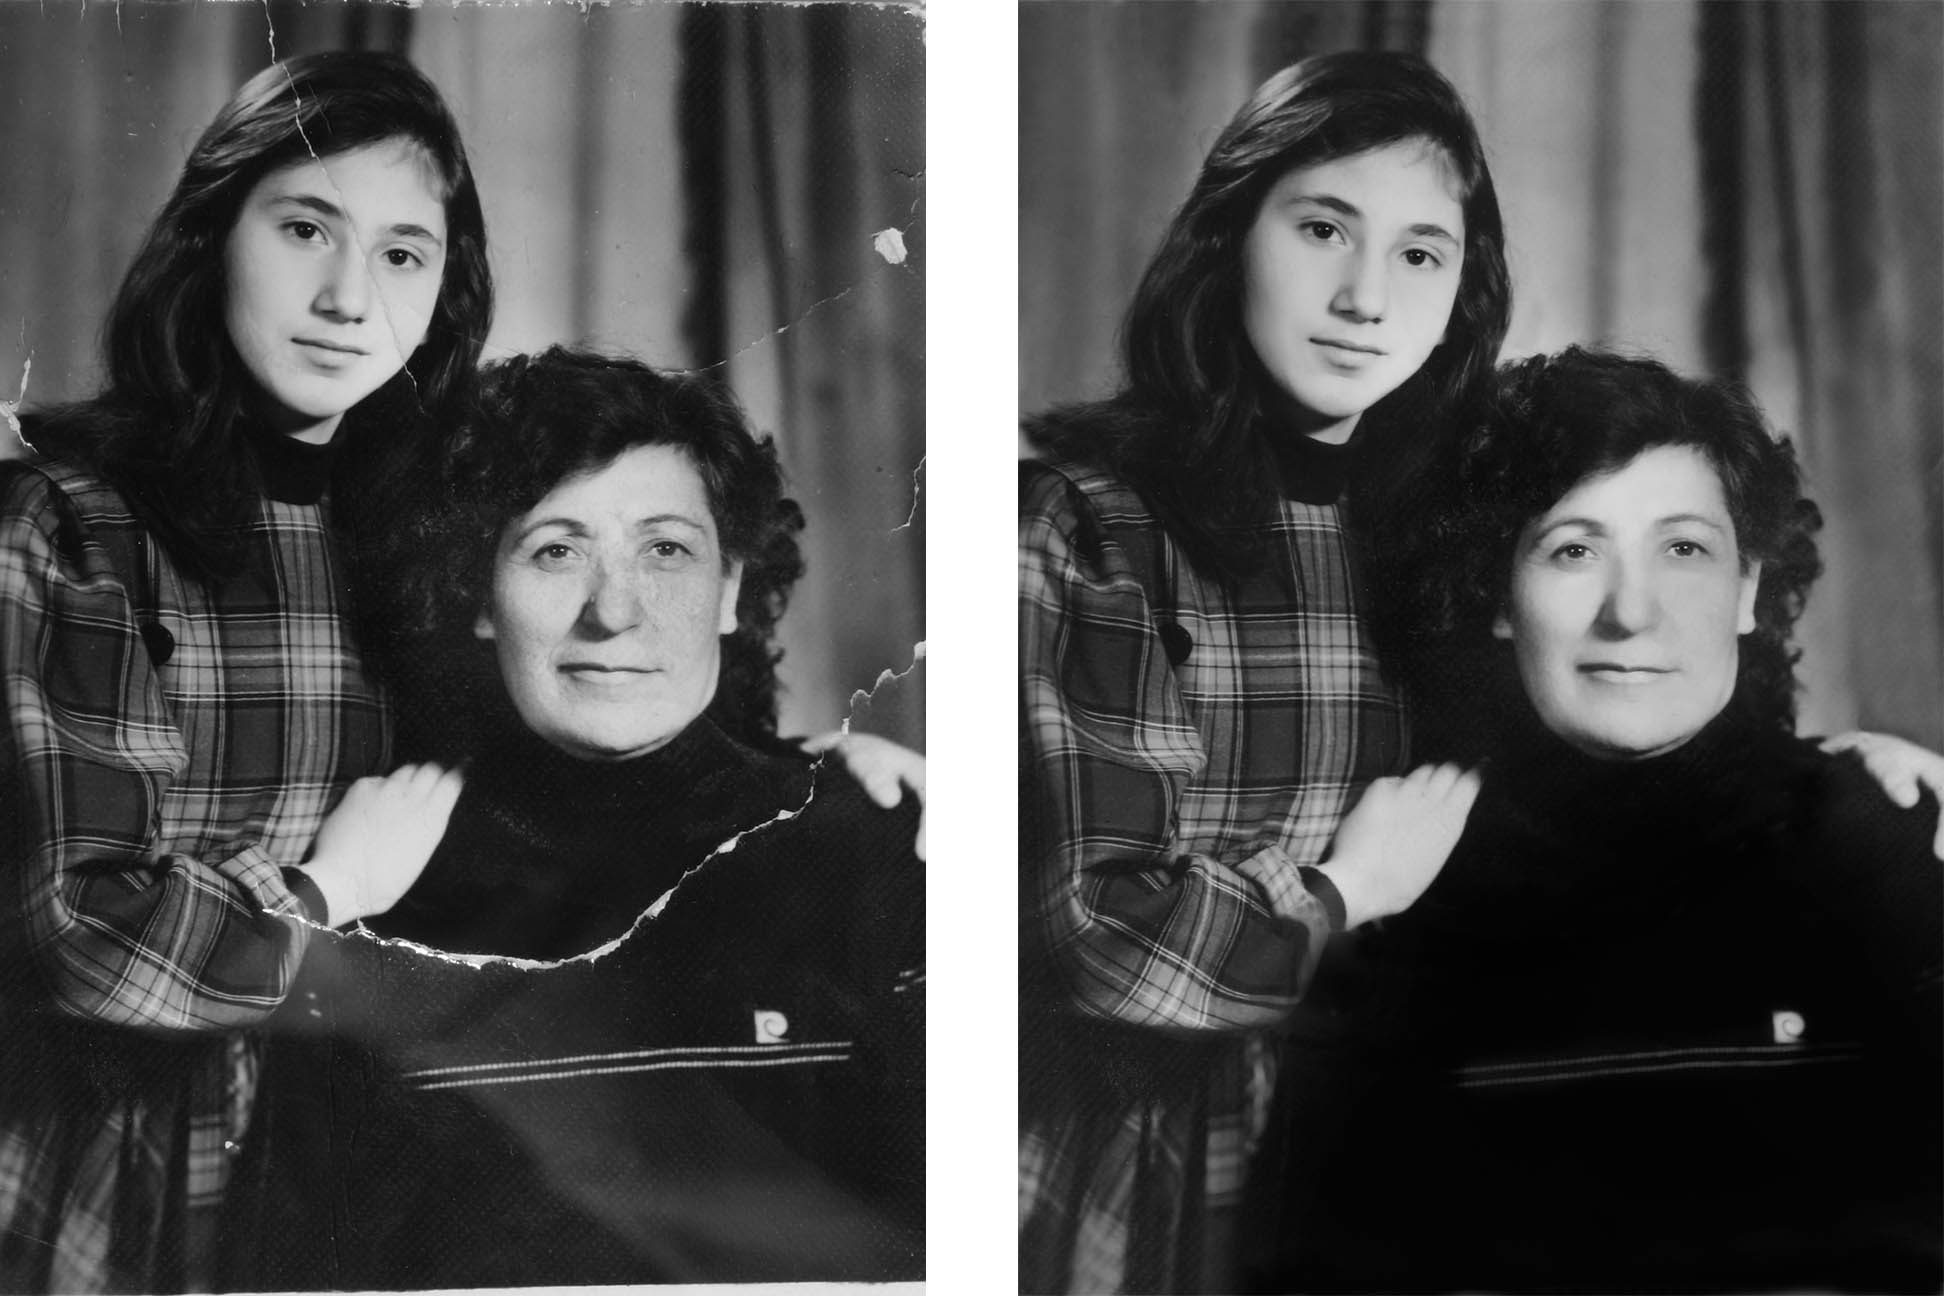 mother daughter old photo restored digitally